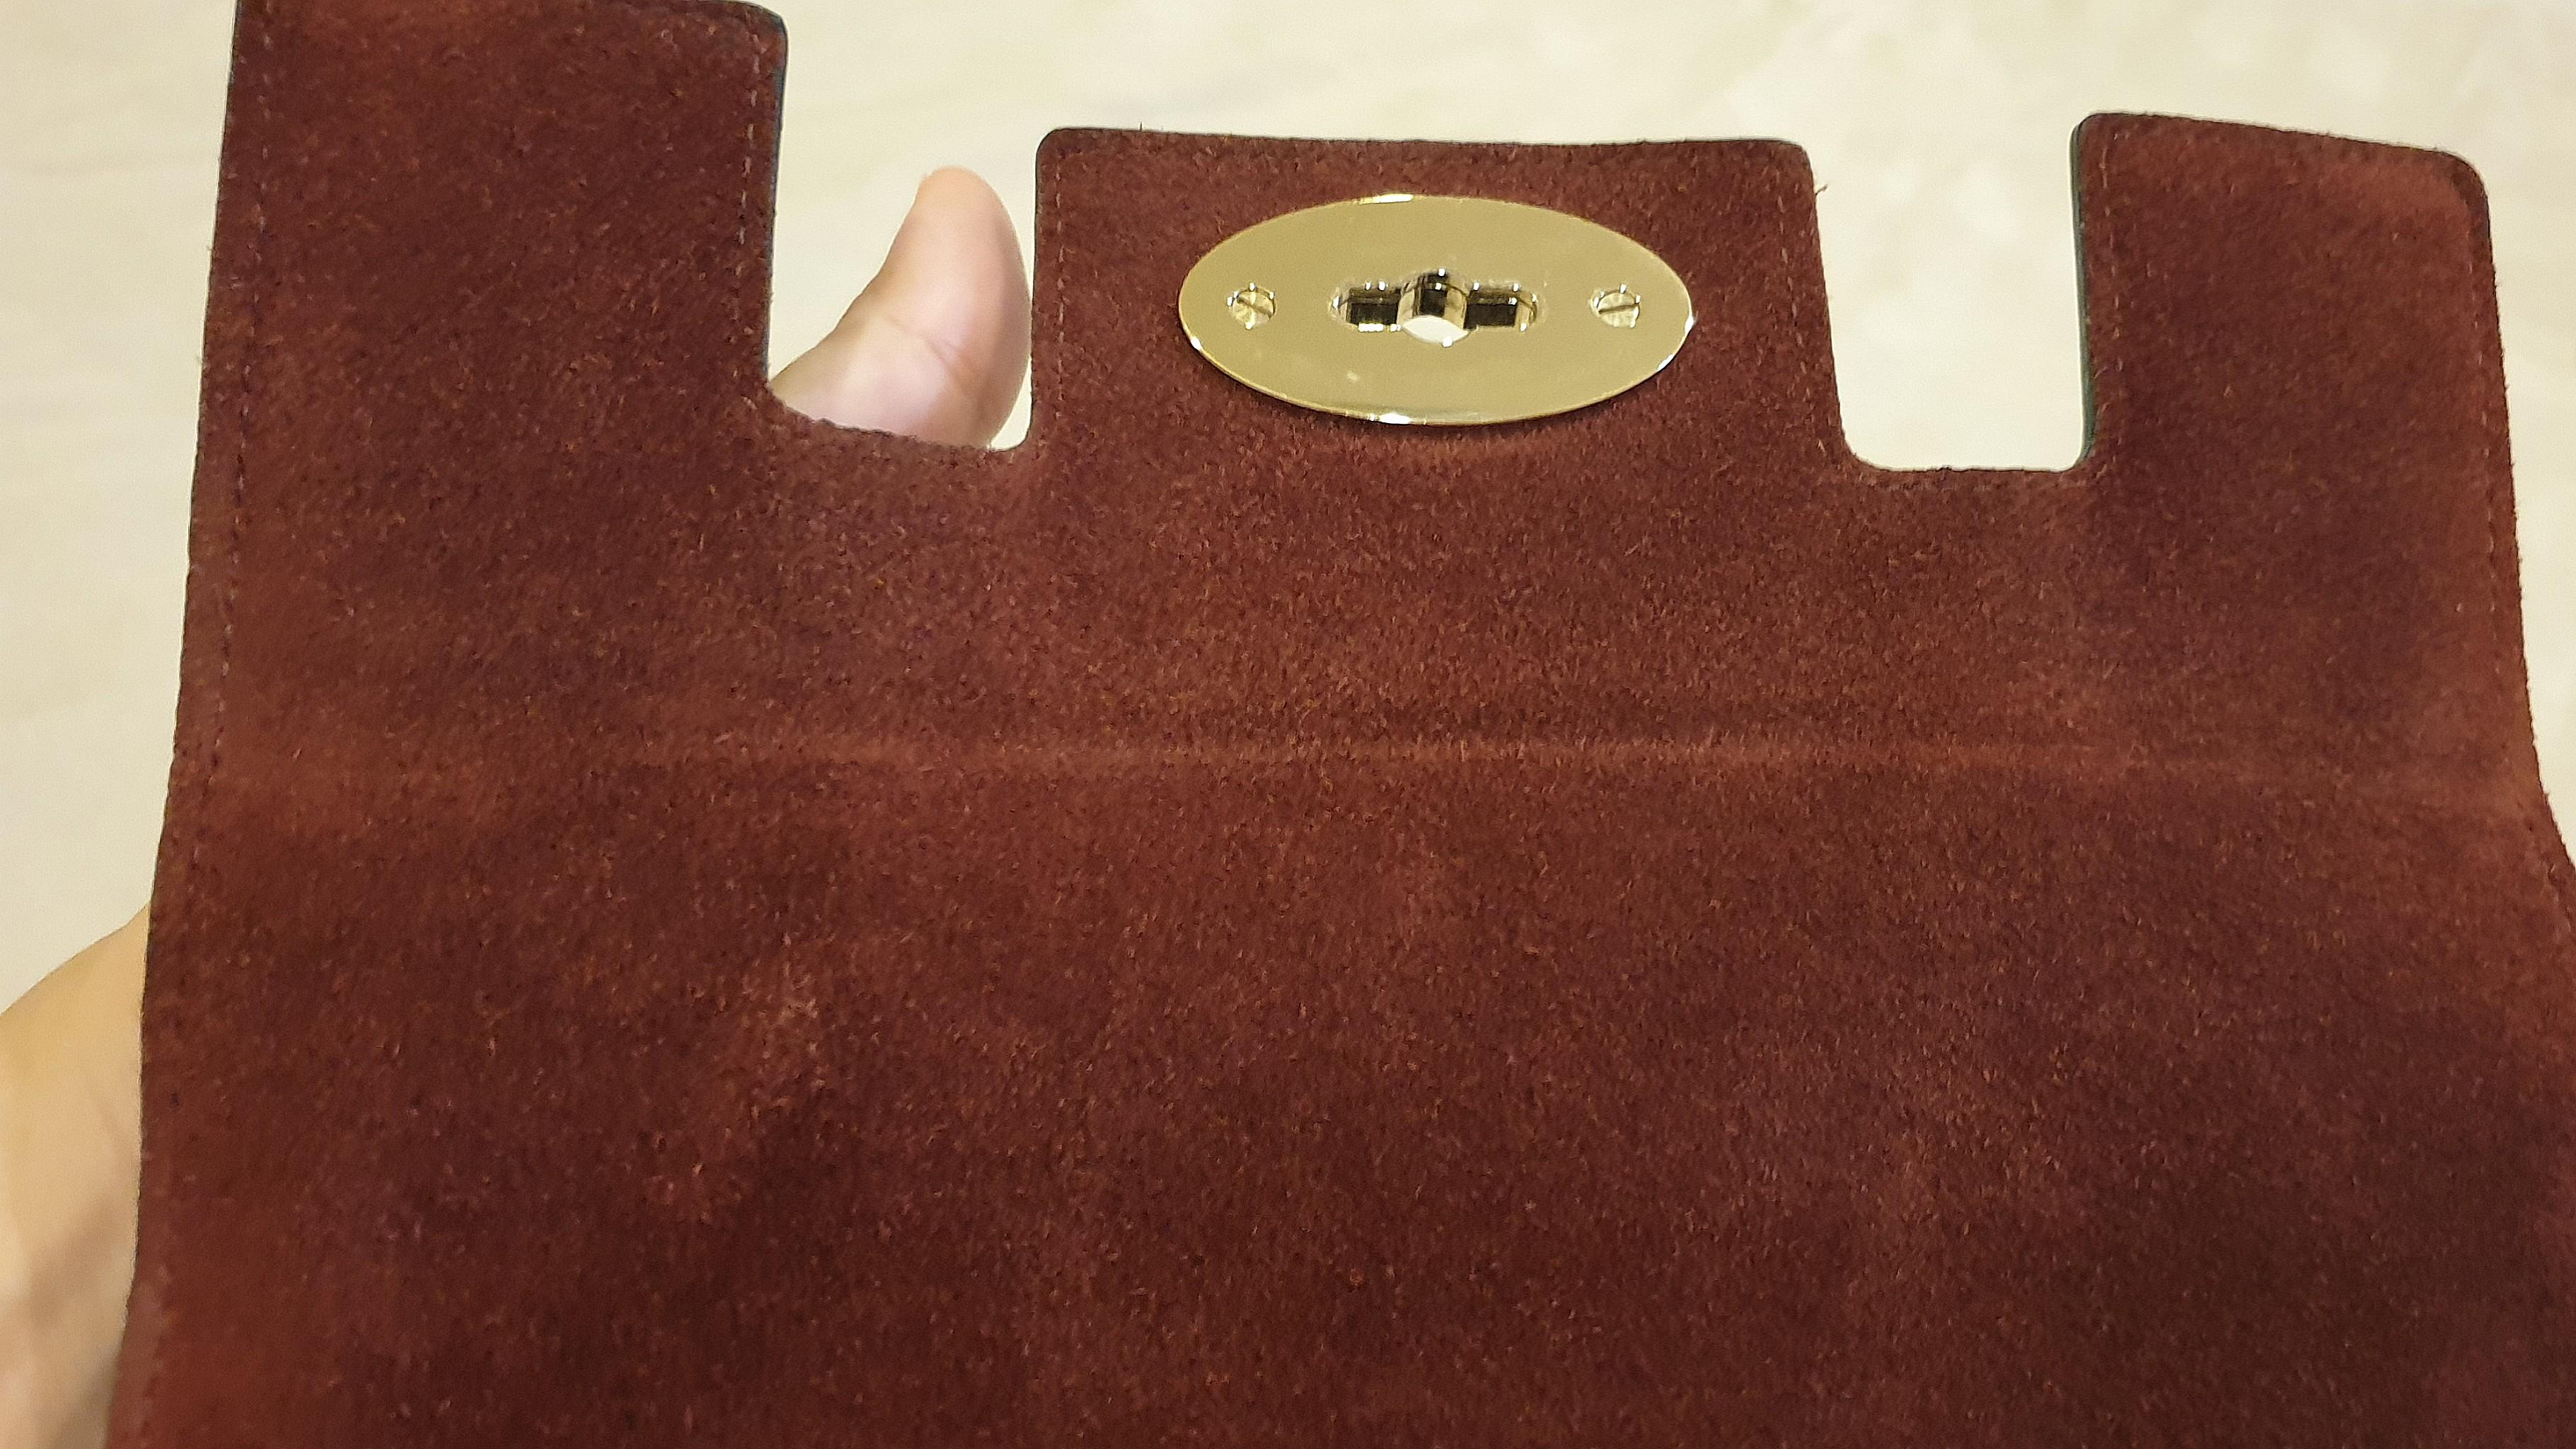 Mulberry Cara Delevingne Cameo Bag (Small) REDUCED PRICE FROM RM2,500 TO RM1,000. BOUGHT PRICE RM4,500.